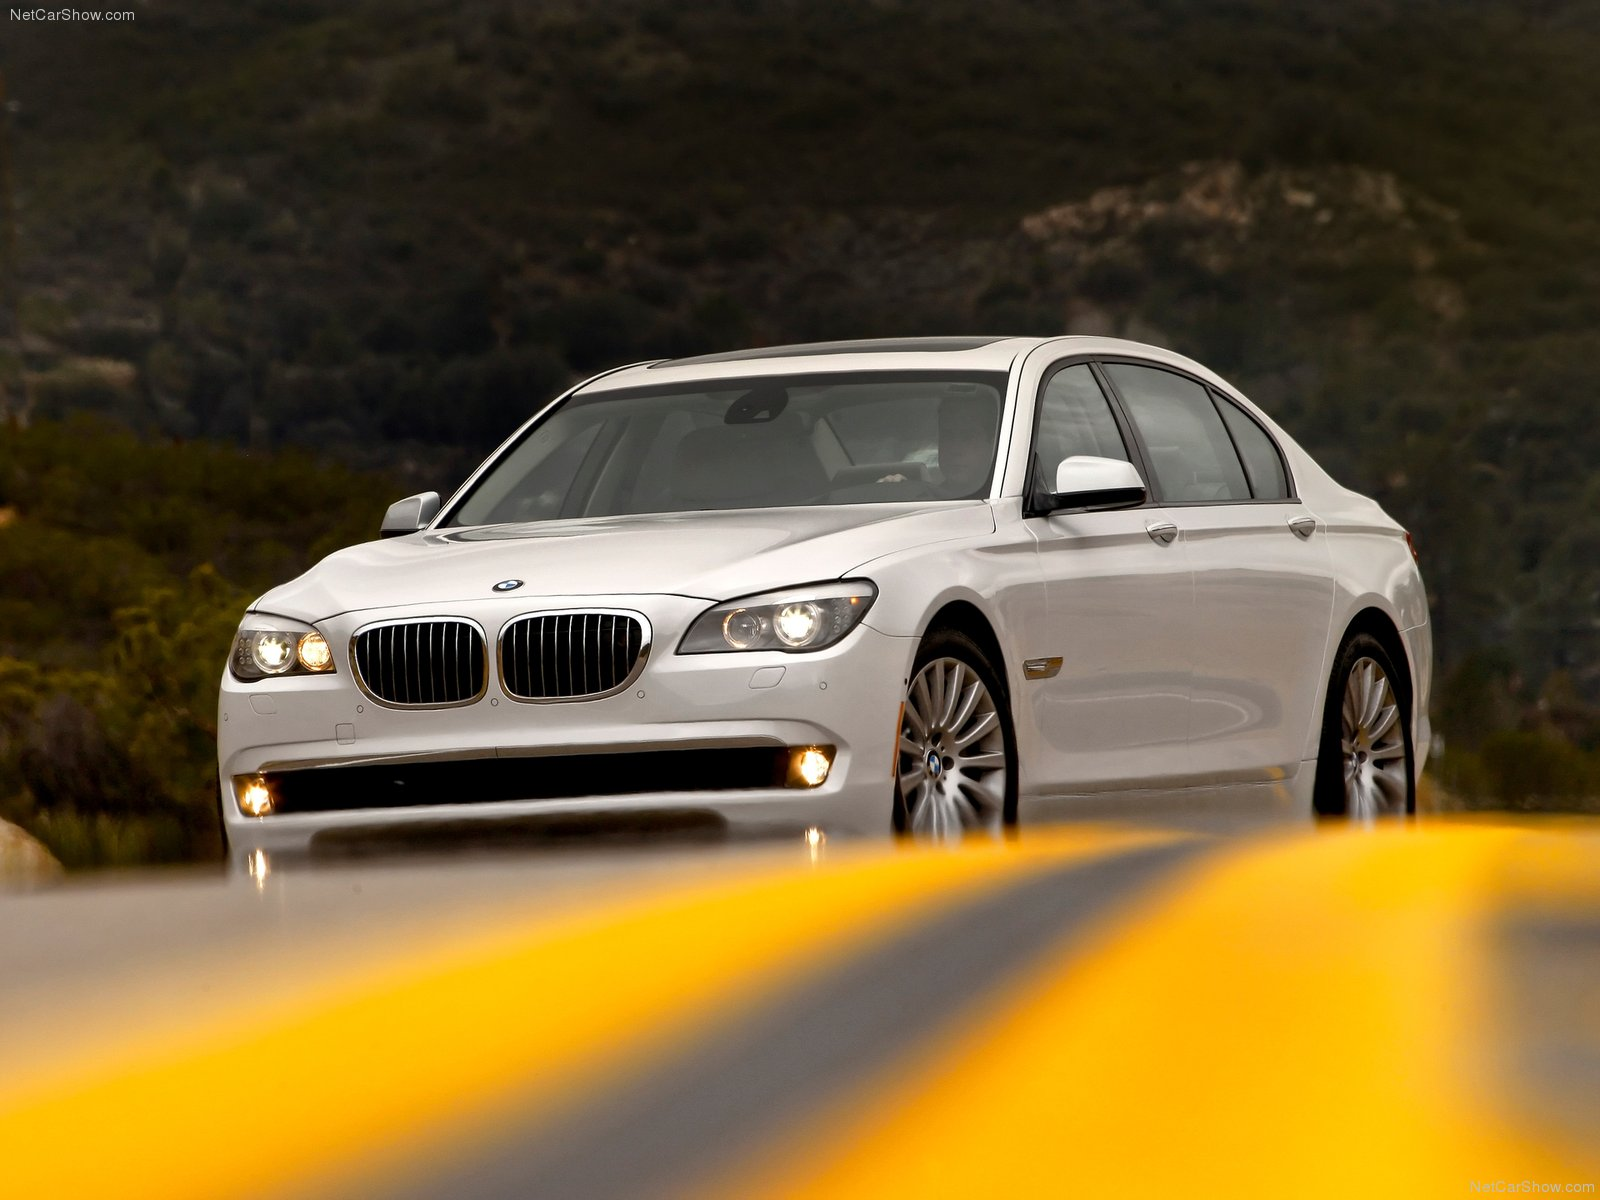 BMW 7-series F01 F02 picture # 81183 | BMW photo gallery ...